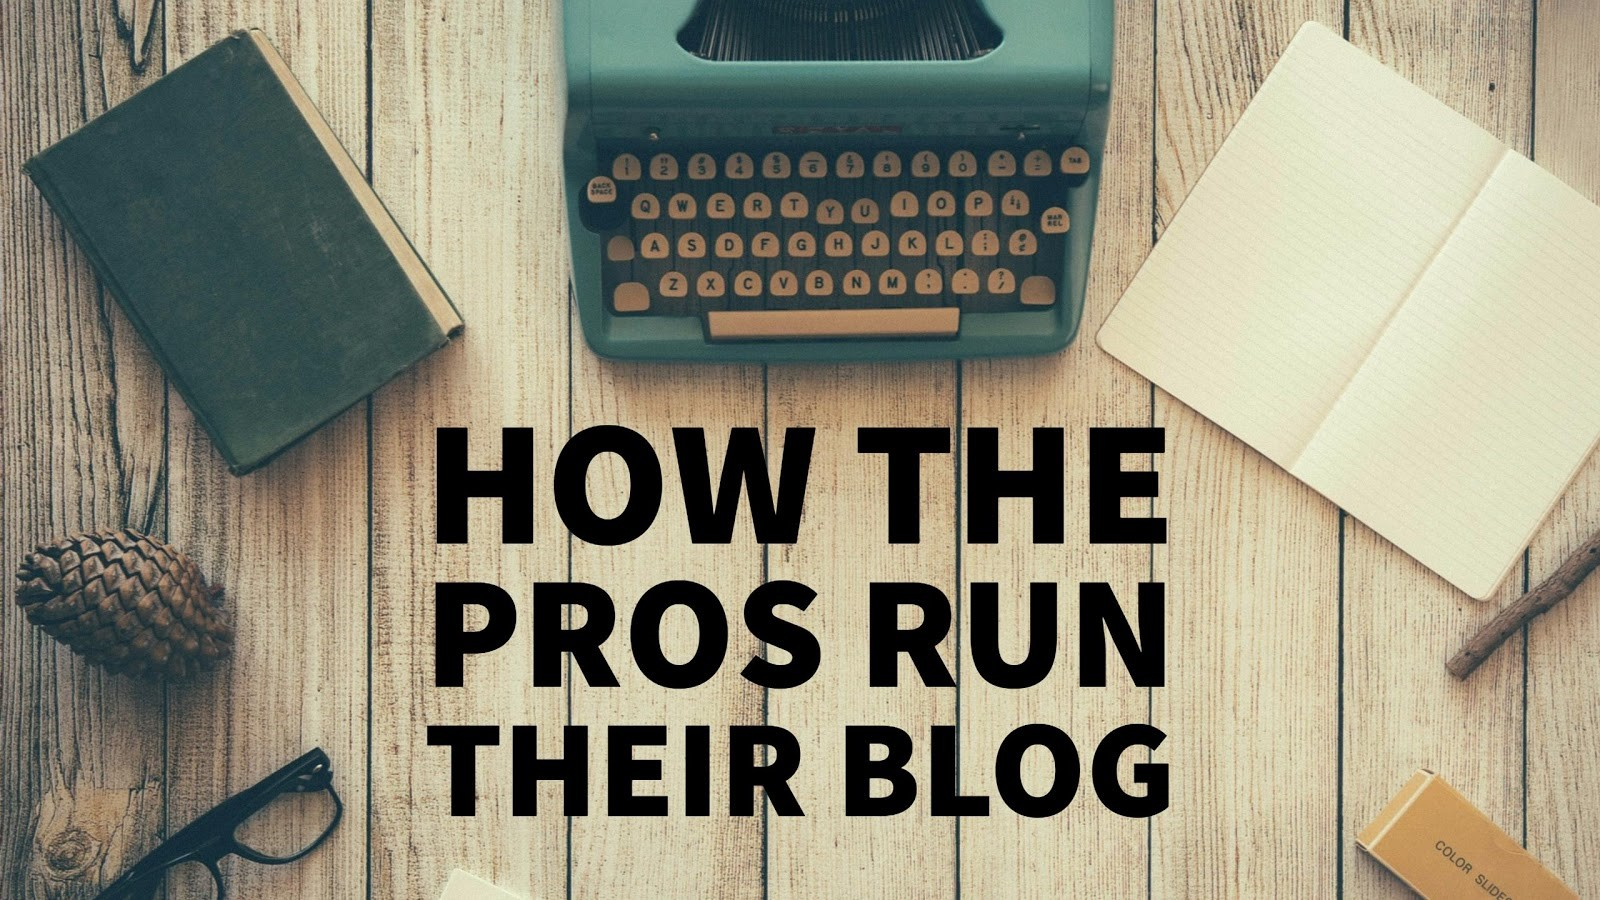 Pro blogging tips to help your business